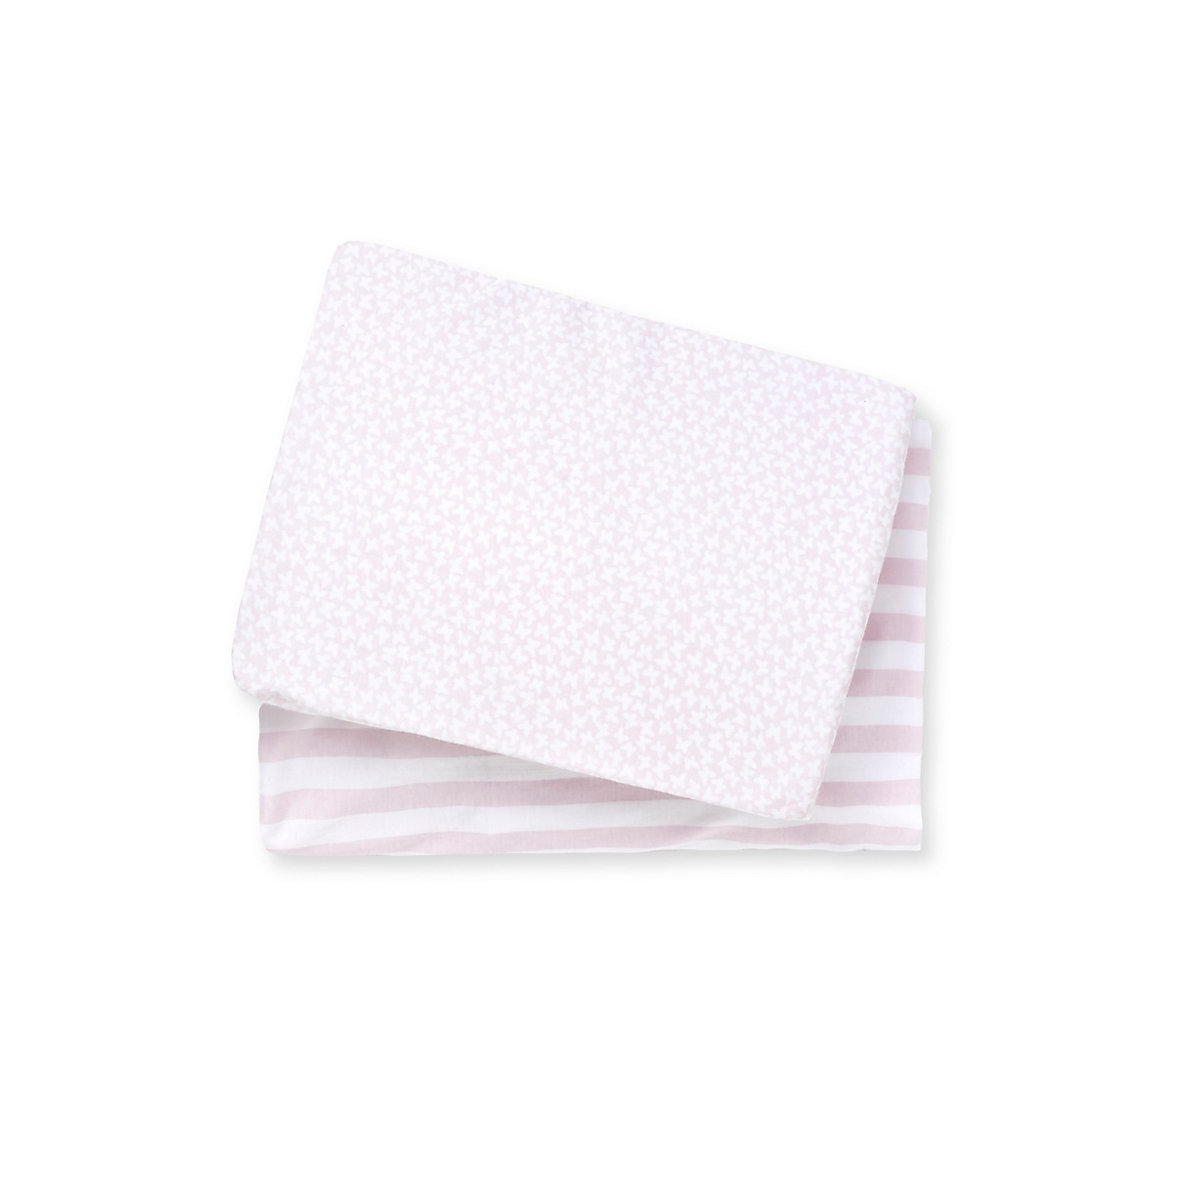 Mothercare Baby Bedding Norwegian Wood Fitted Cot Sheets- 2